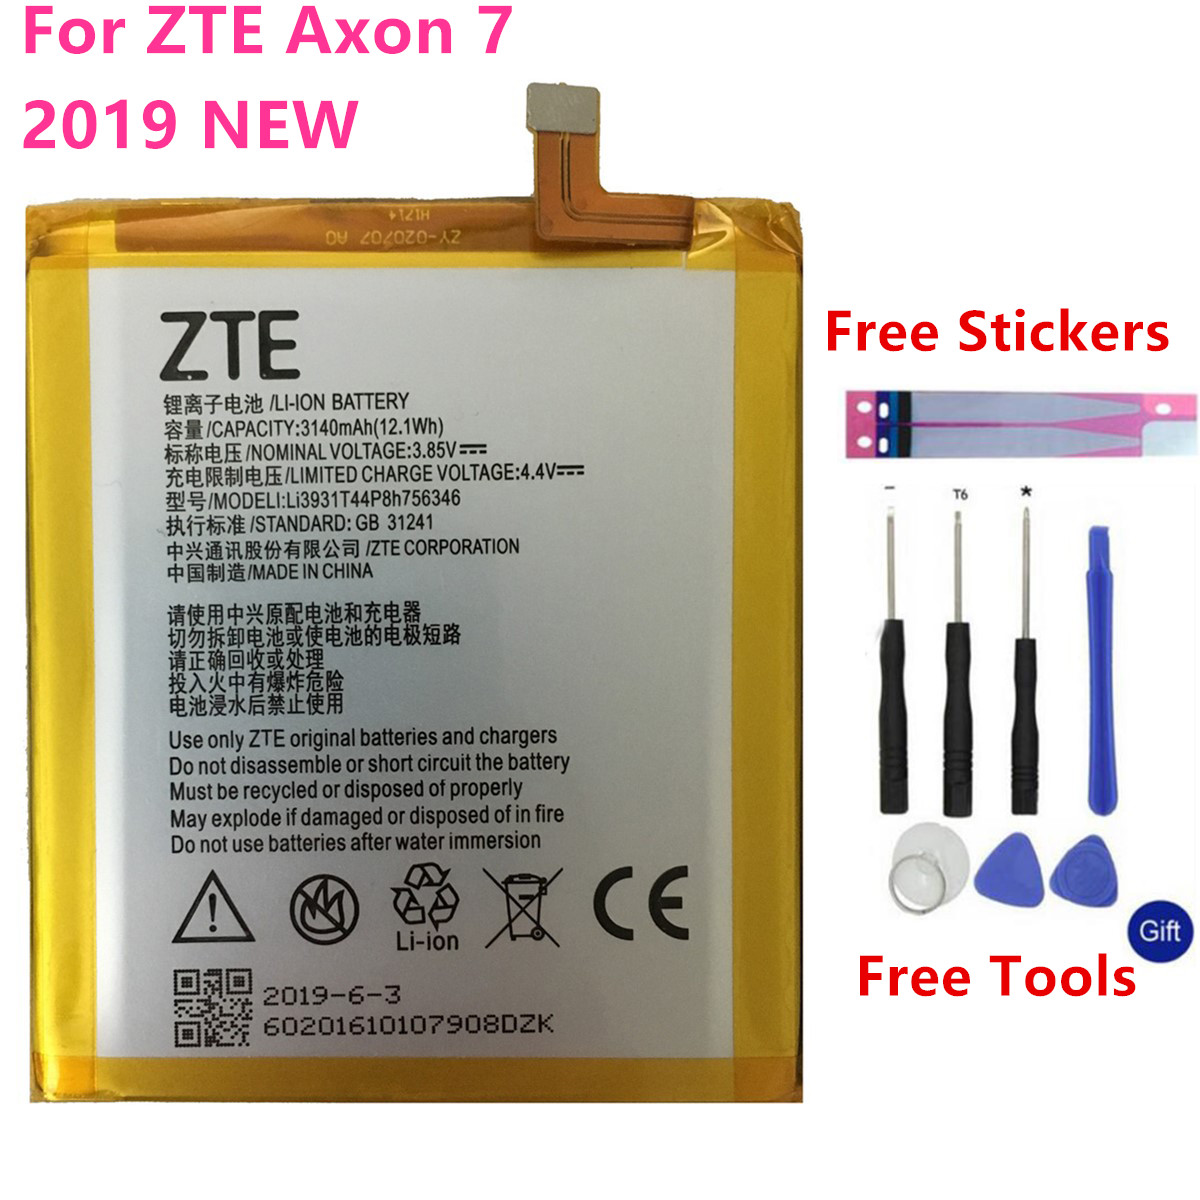 LI3931T44P8H756346 Battery For ZTE Axon 7 5.5inch A2017 Battery 3140mAh  With Tracking Number+Gift Tools +Stickers